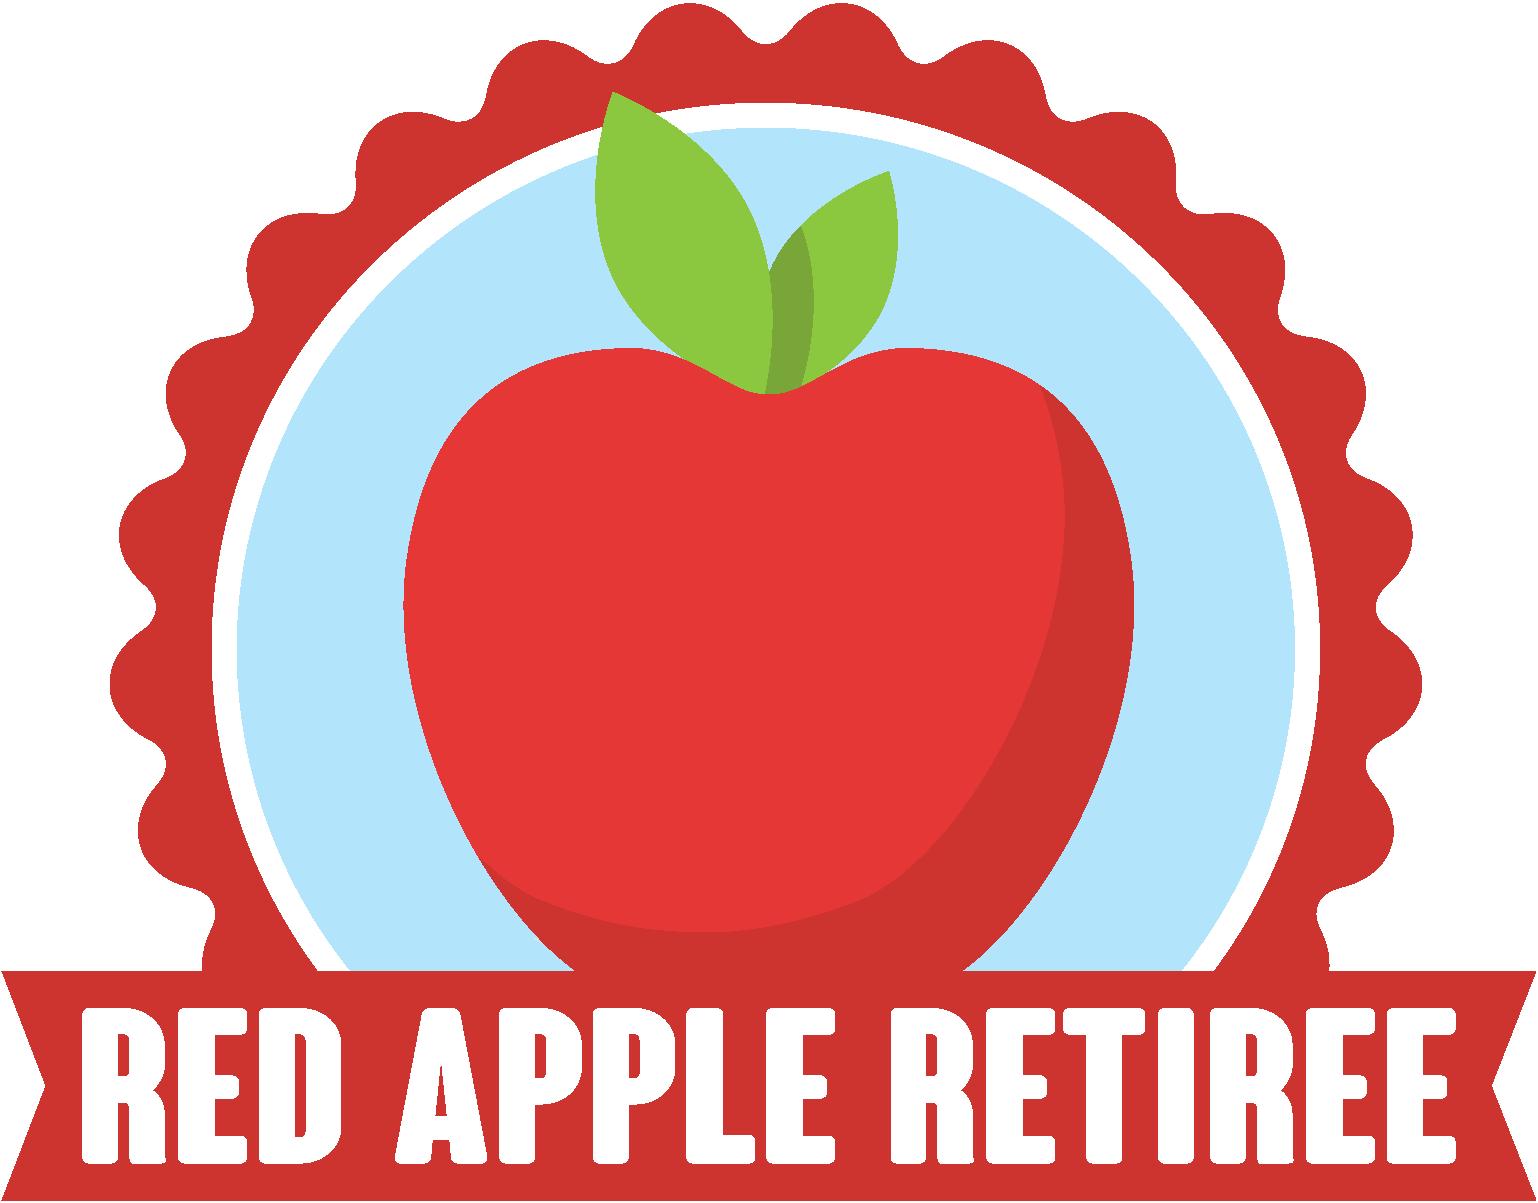 Red Apple Retiree